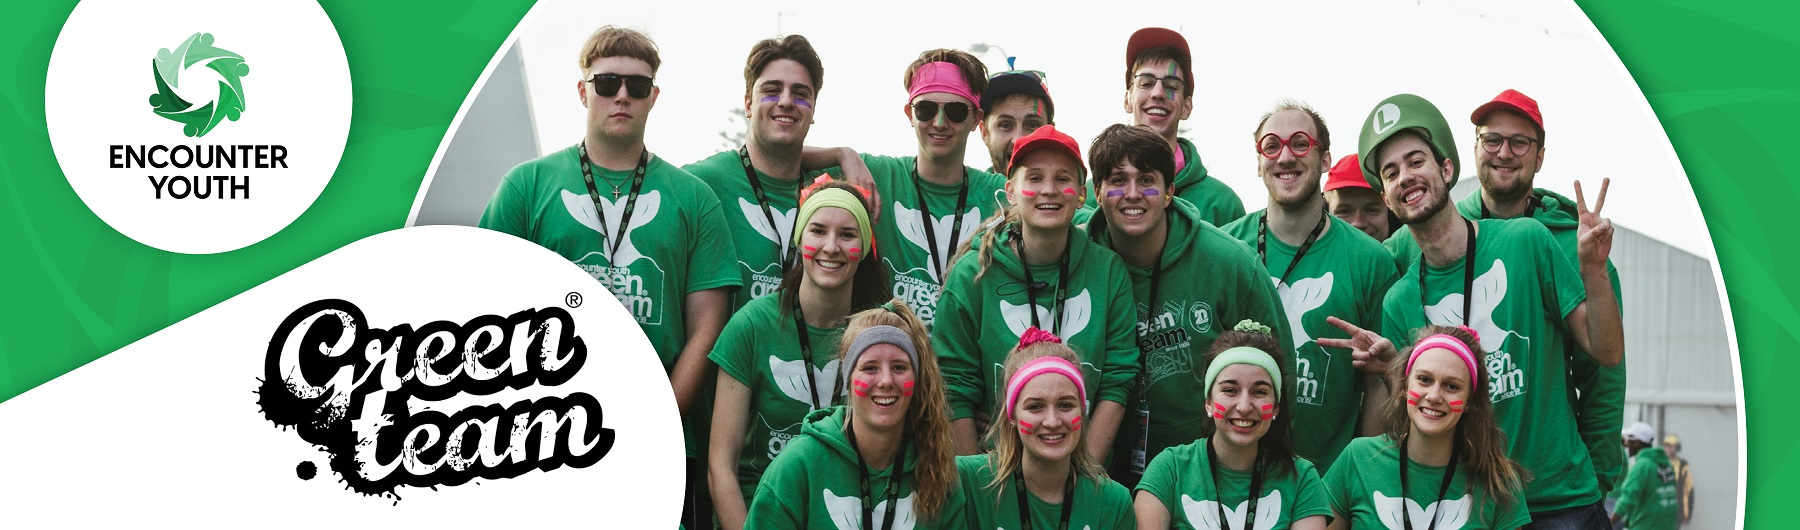 Encounter Youth hosts the Green Team Volunteers.